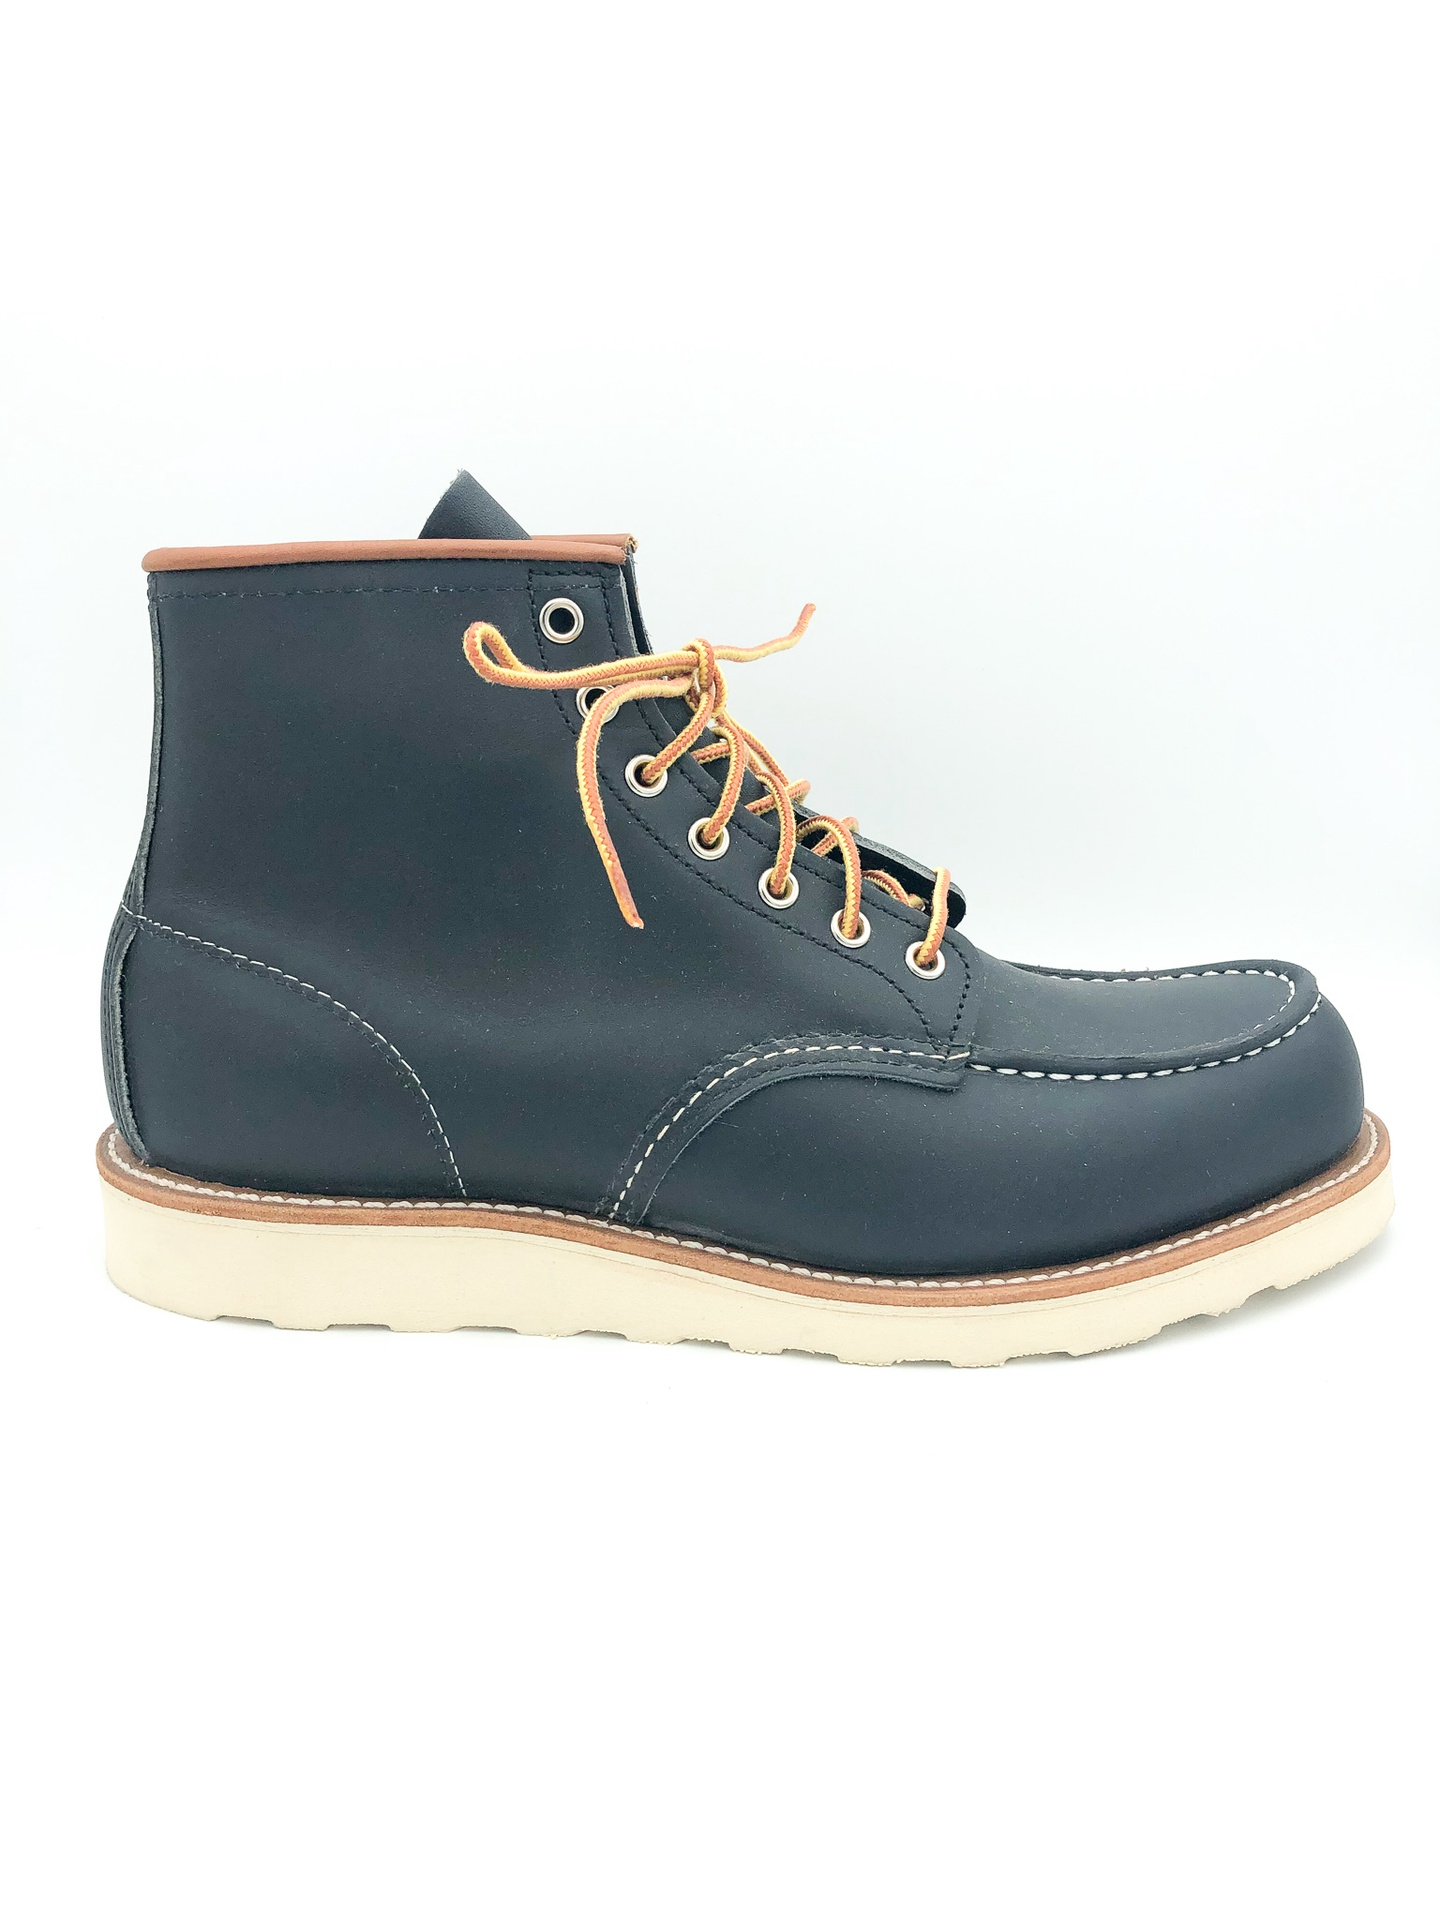 RED WING - MEN'S CLASSIC MOC IN NAVY